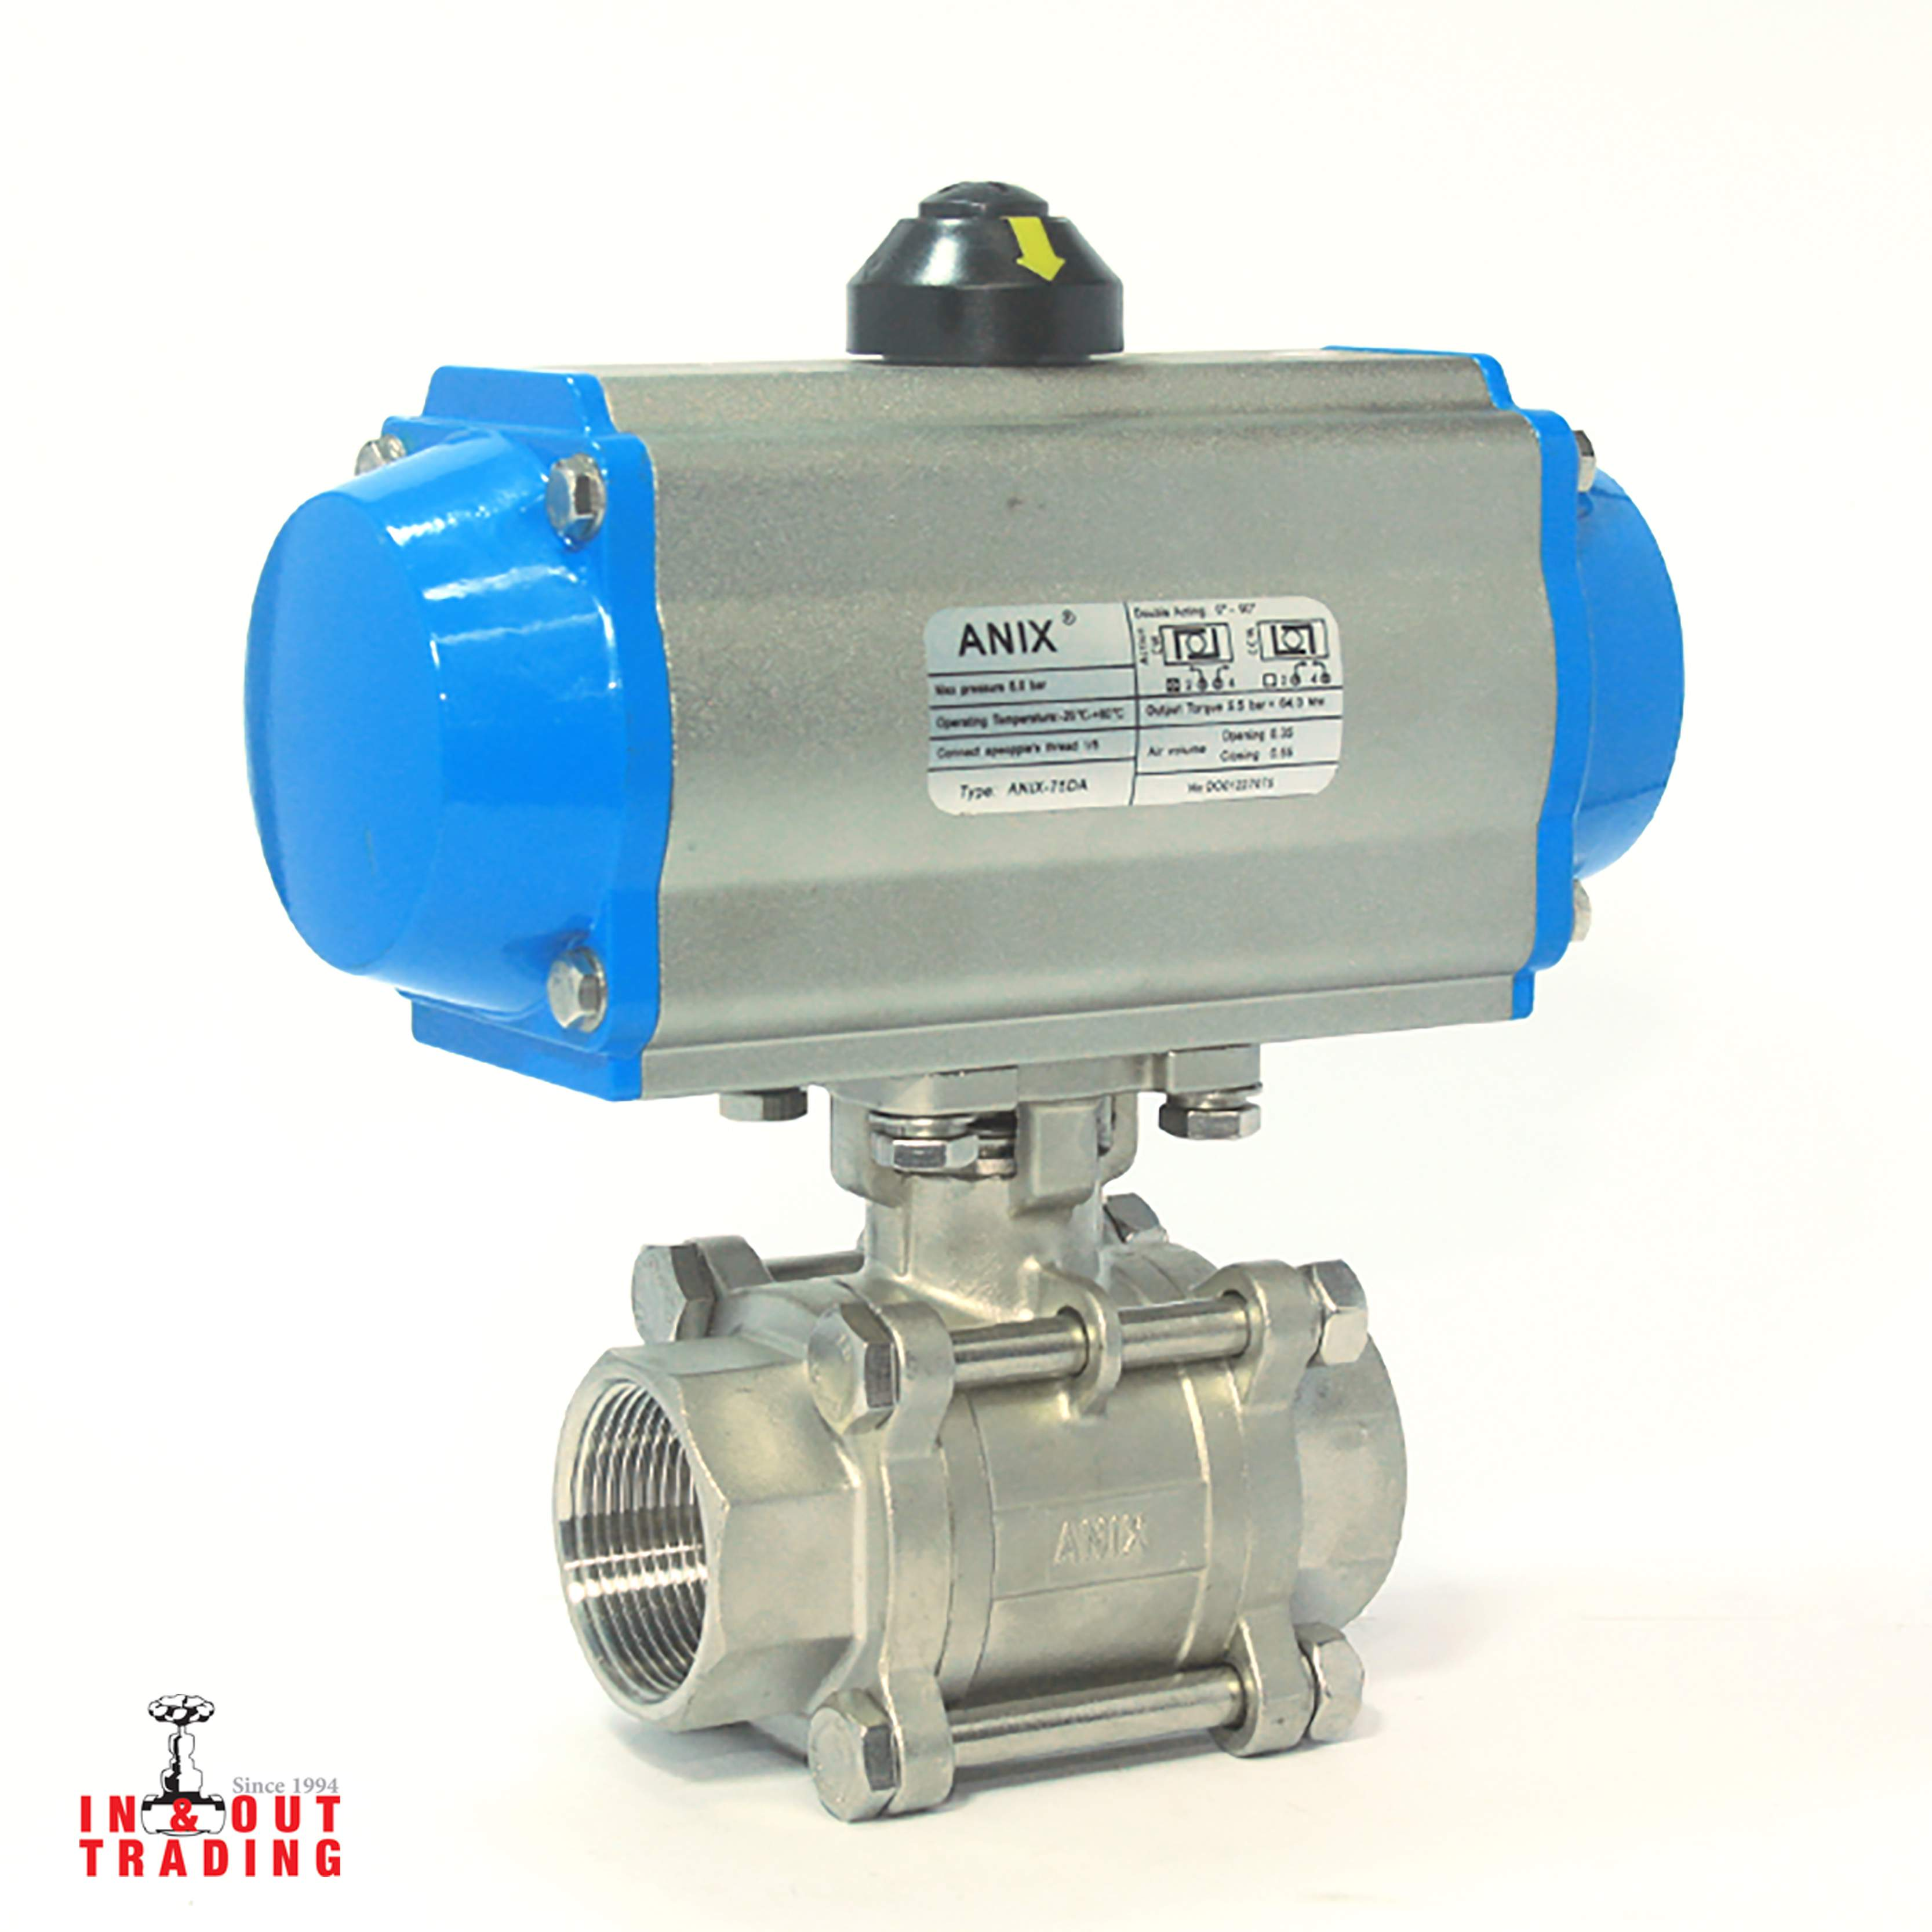 'ANIX - BALL VALVE SS316 PN16 with PNEUMATIC ACTUATOR'